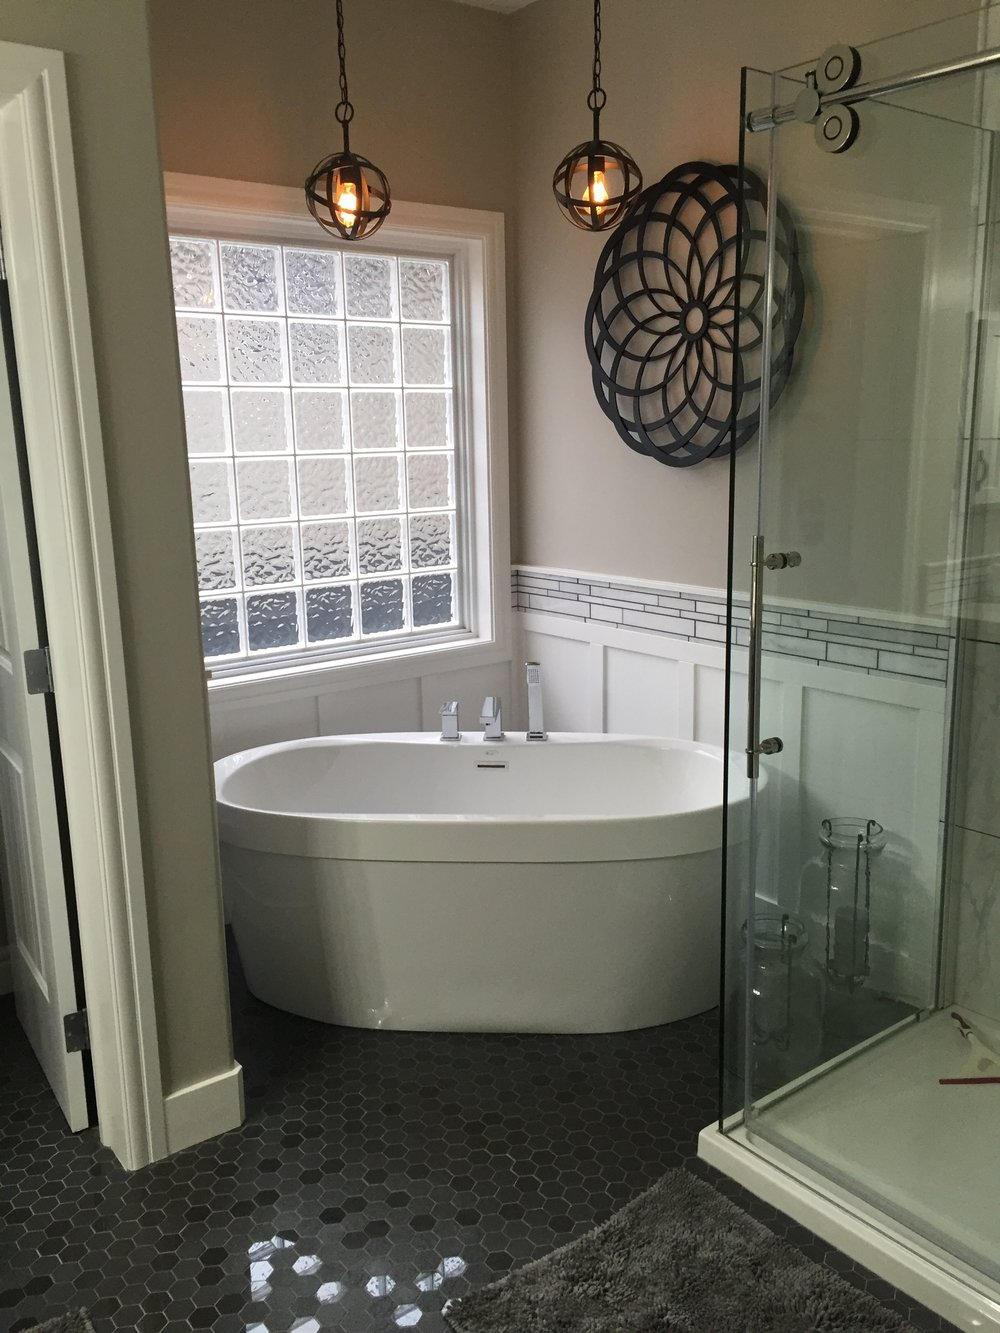 Updated corner freestanding soaker tub, hexagon floor tile, marble mosaics, rolling glass door hardware